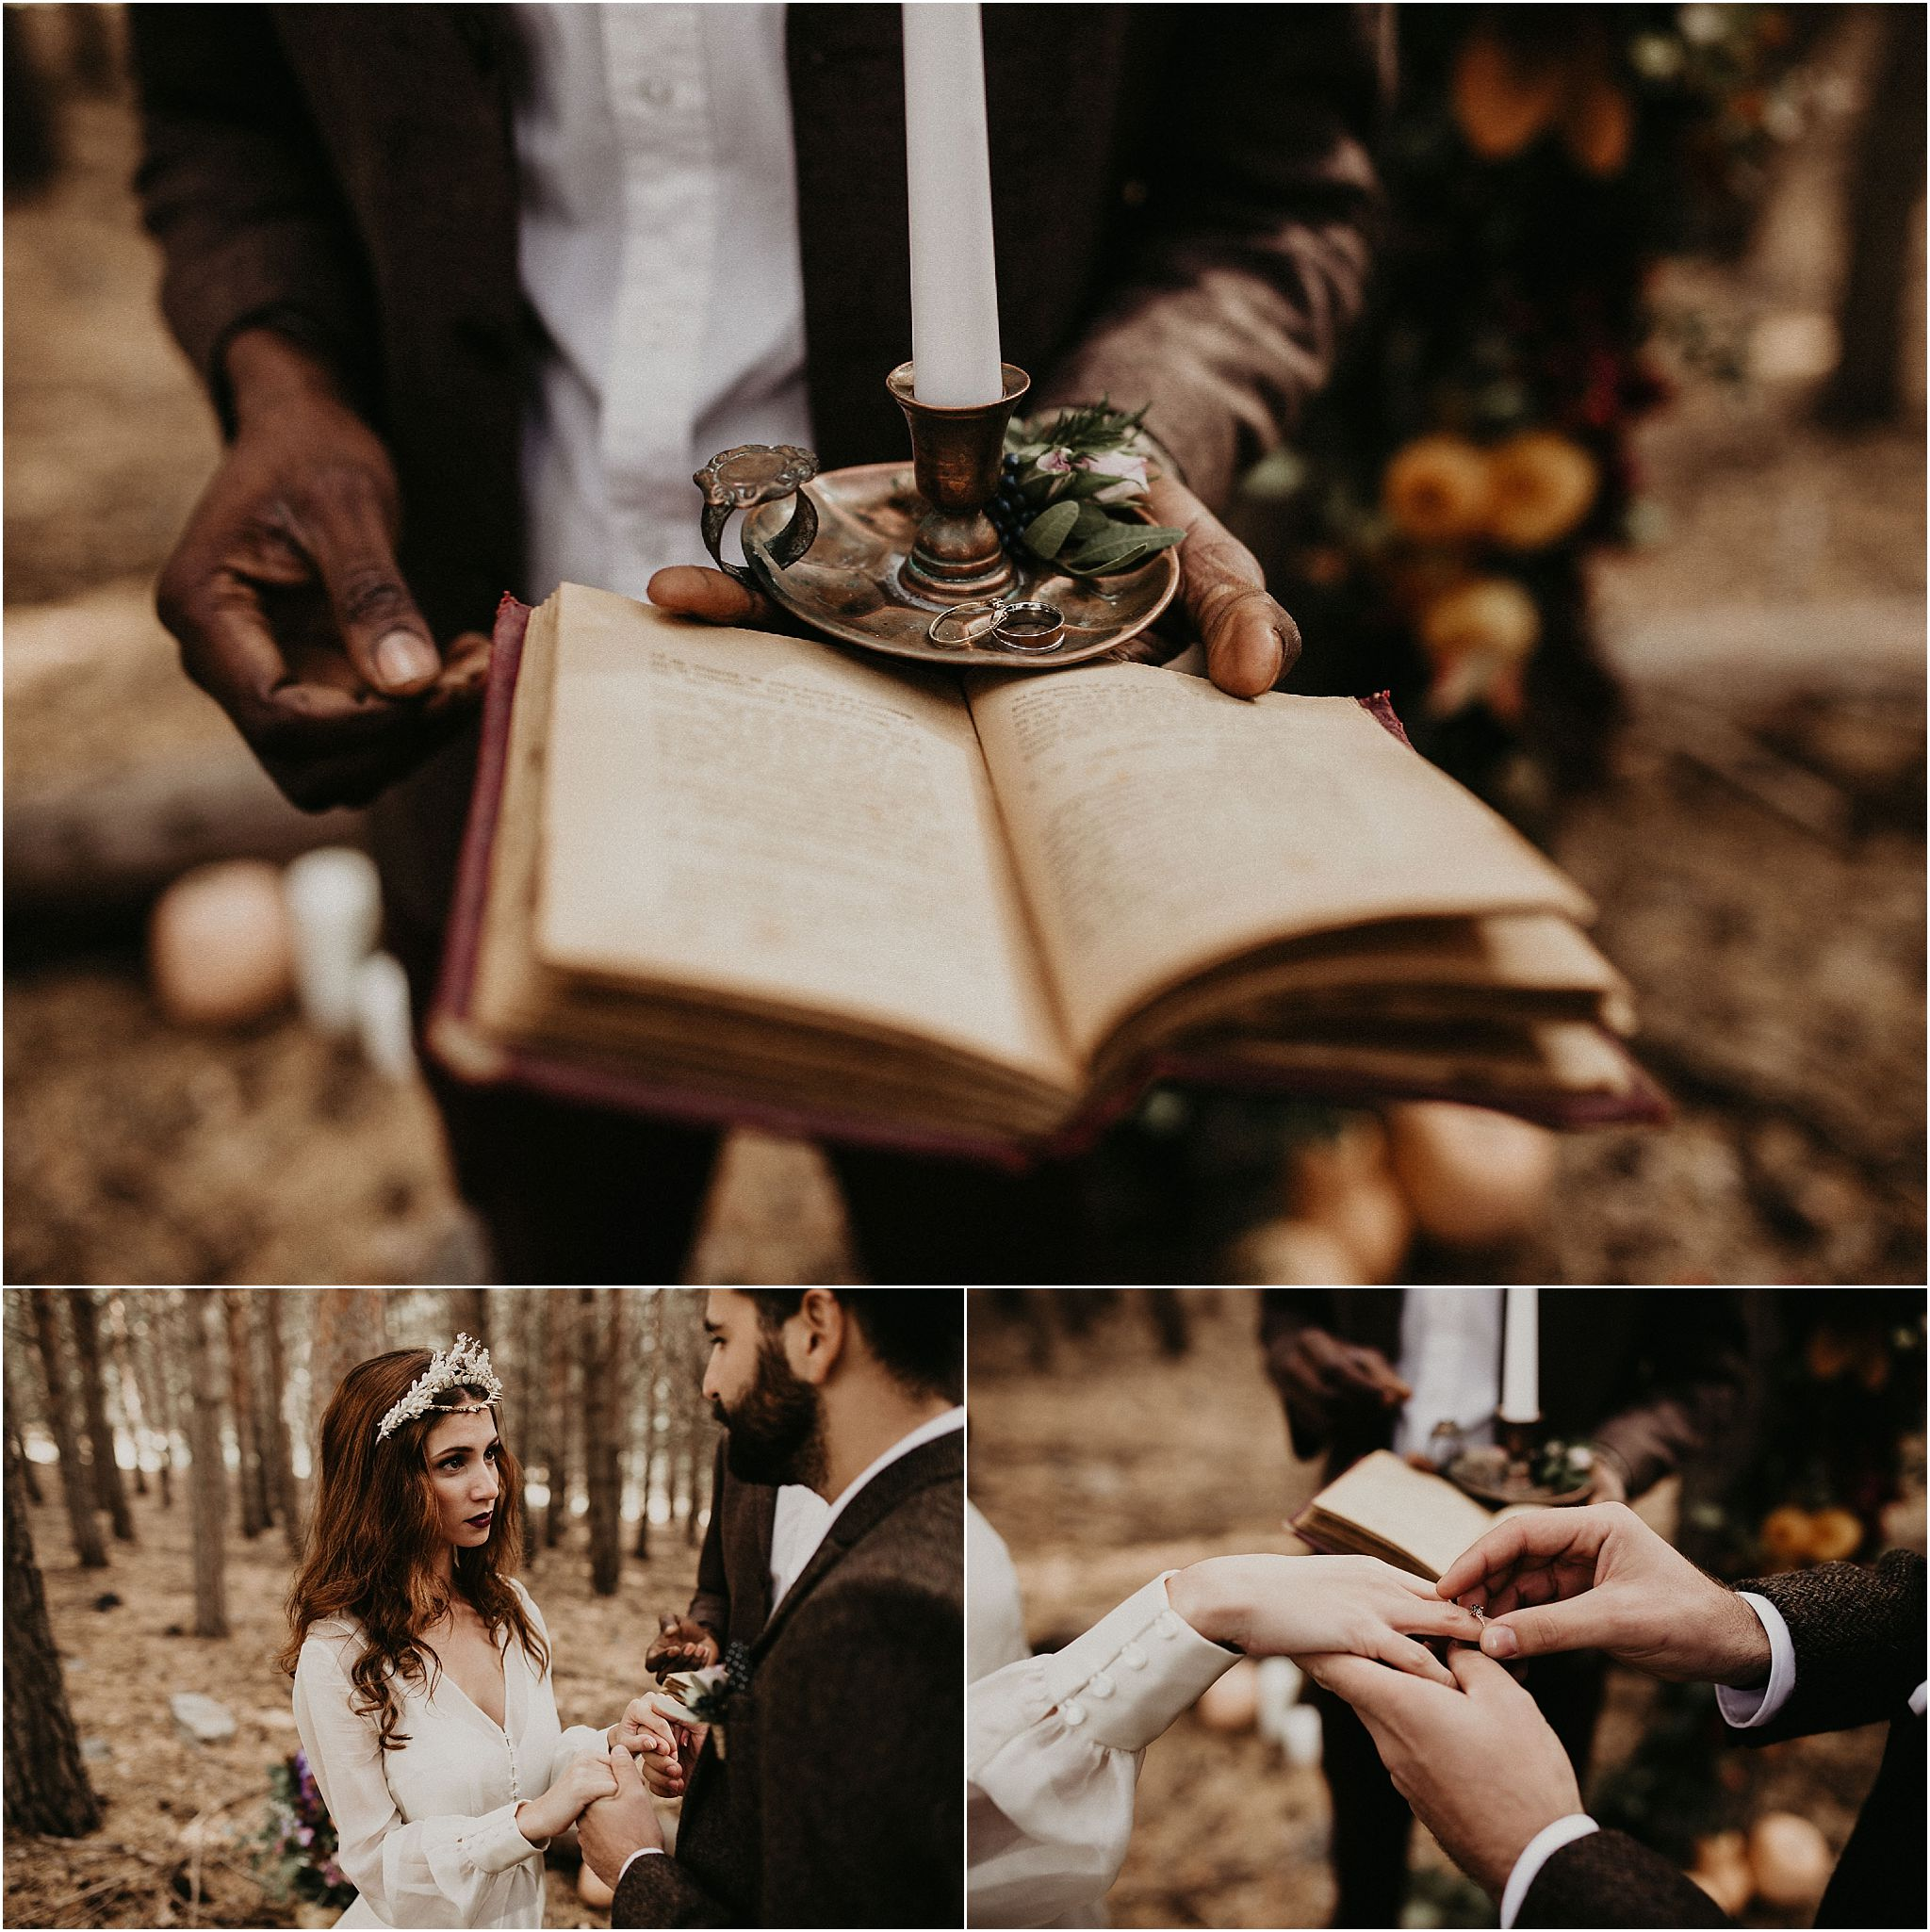 Intimate folk wedding 36.jpg